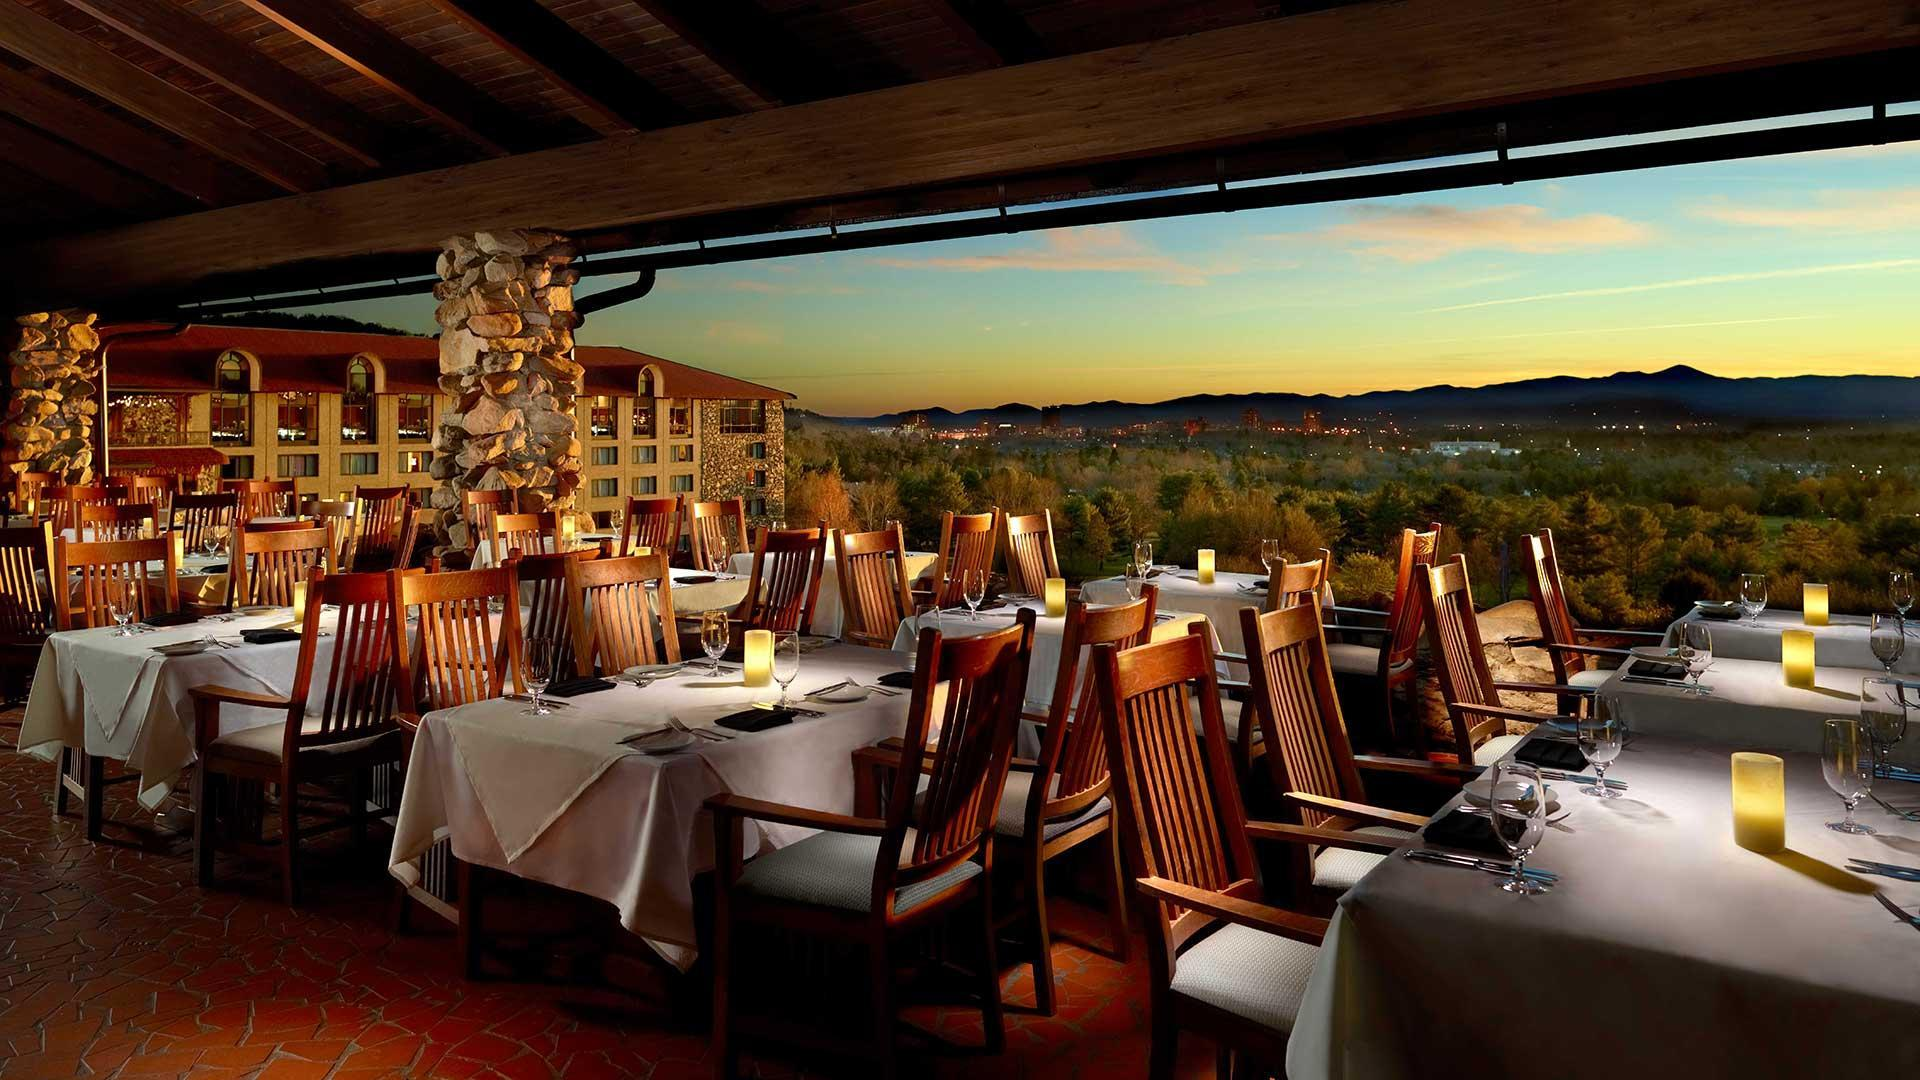 OmniGroveParkInn_sunset-Terrasse